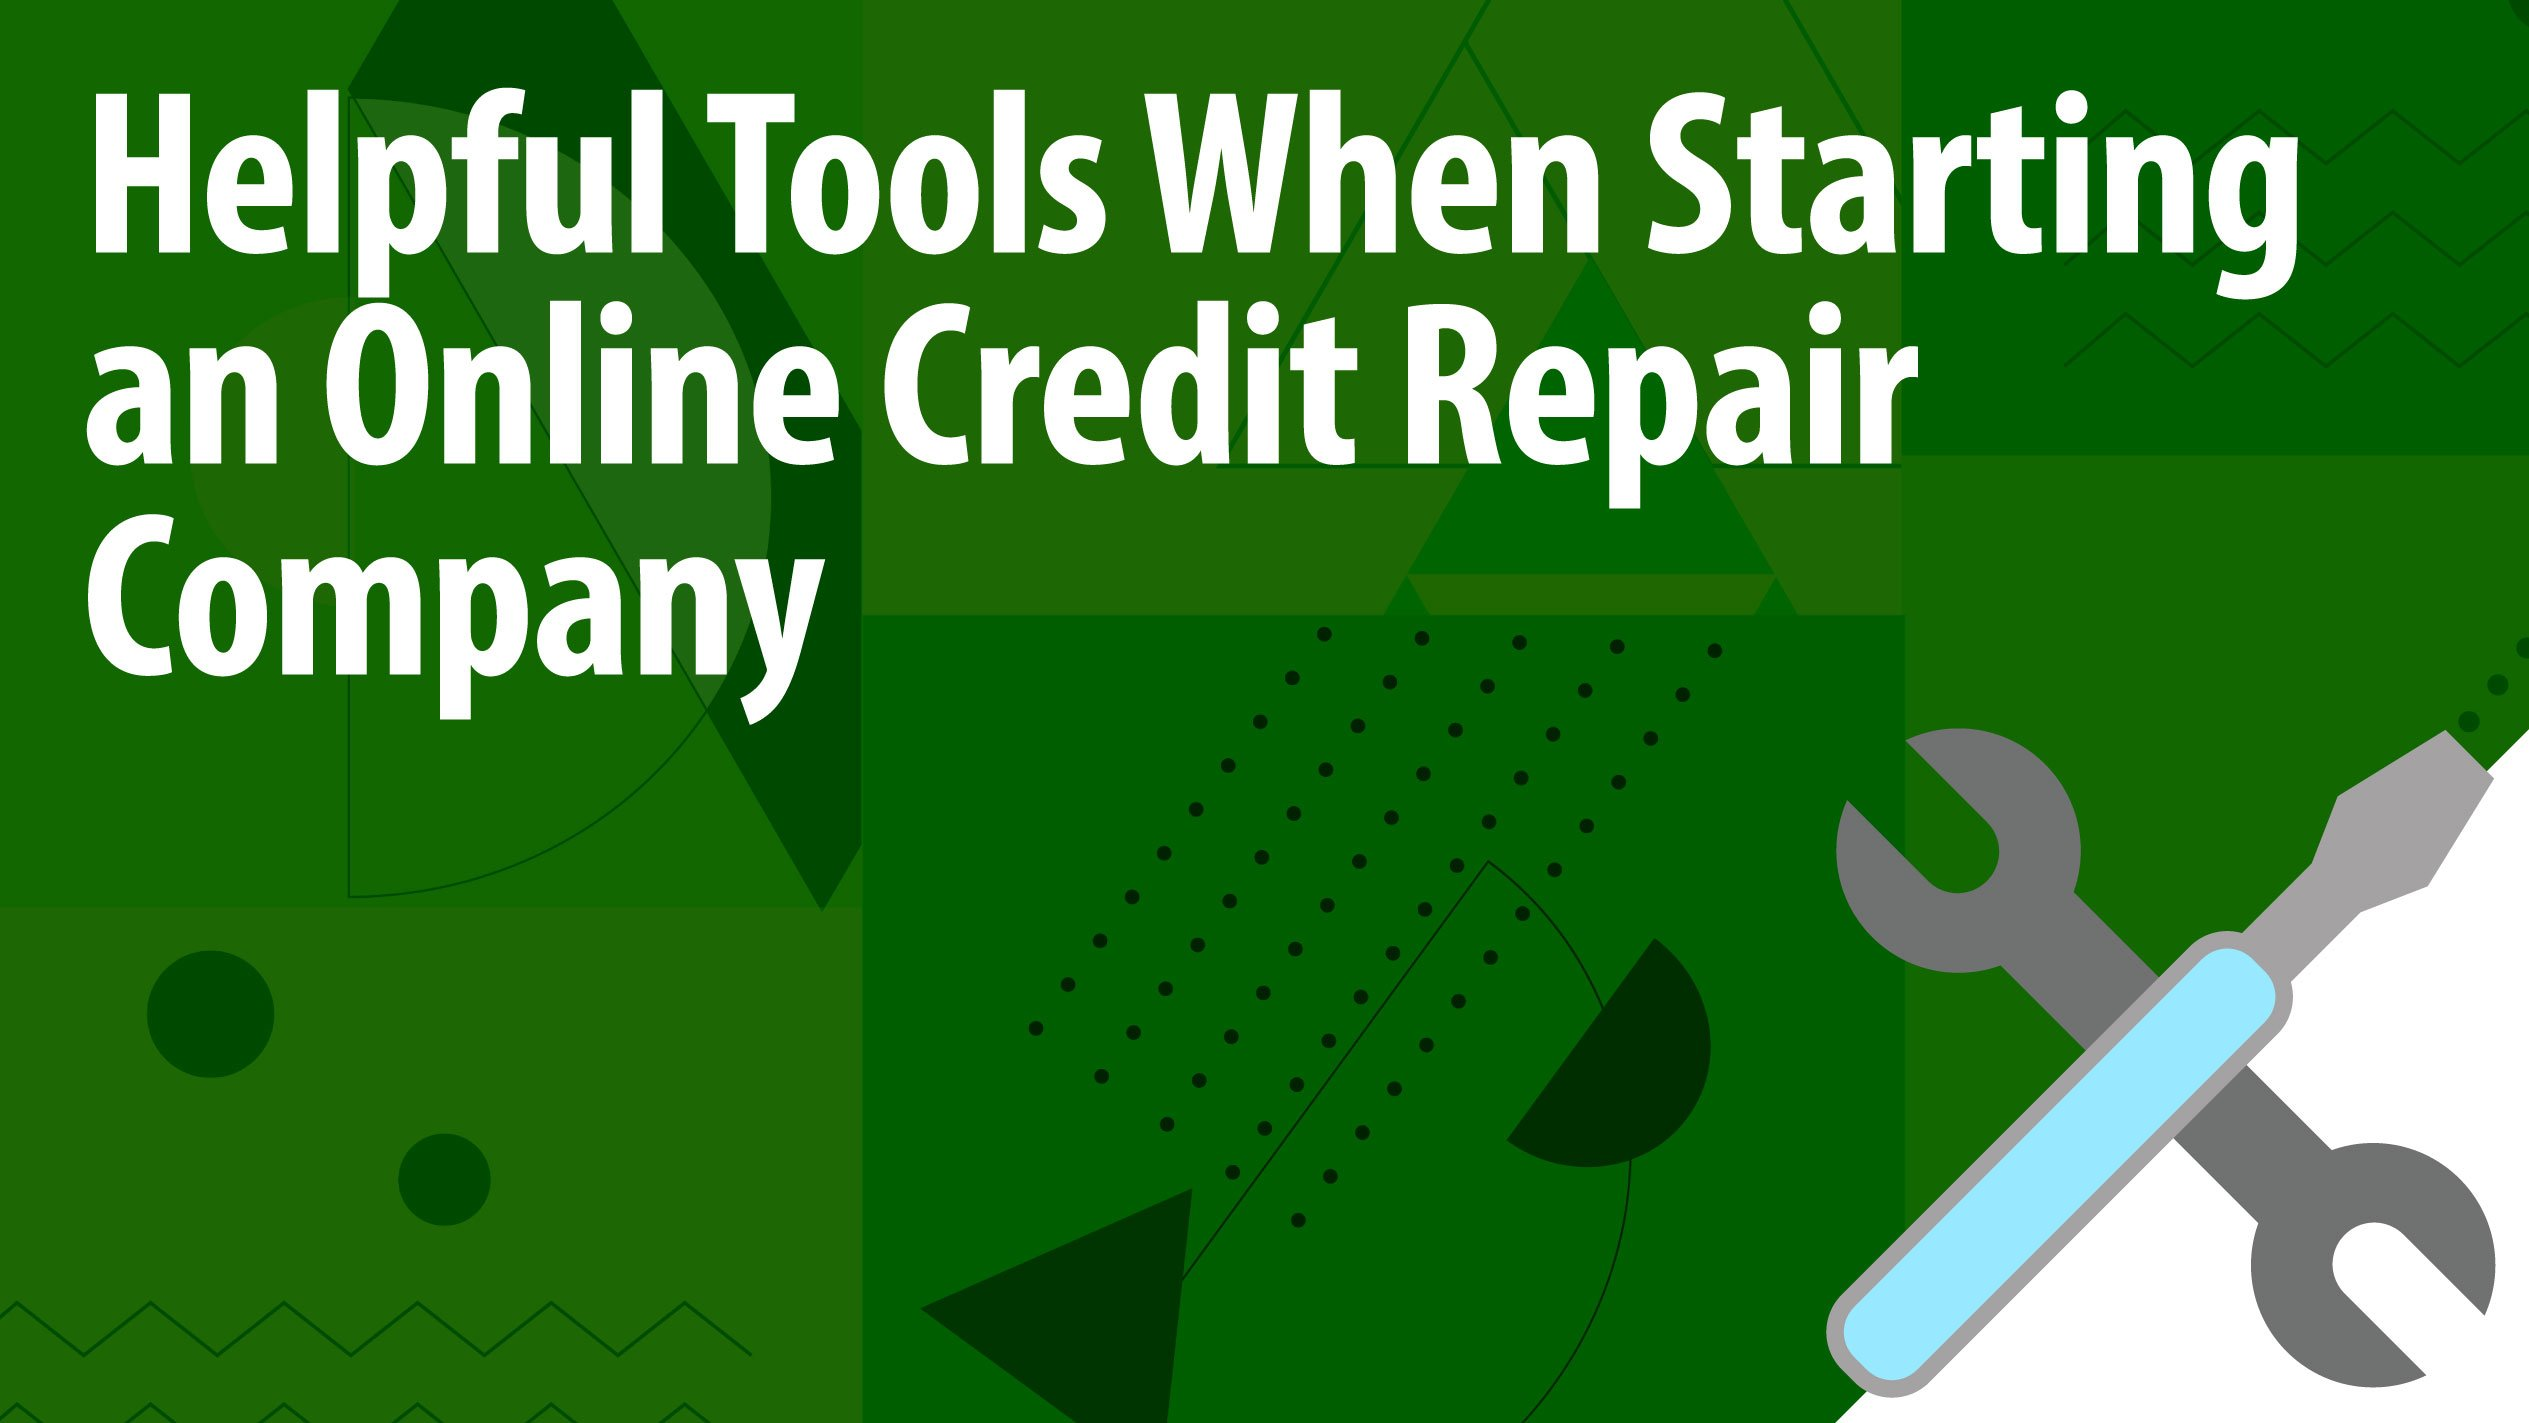 Helpful Tools When Starting an Online Credit Repair Company